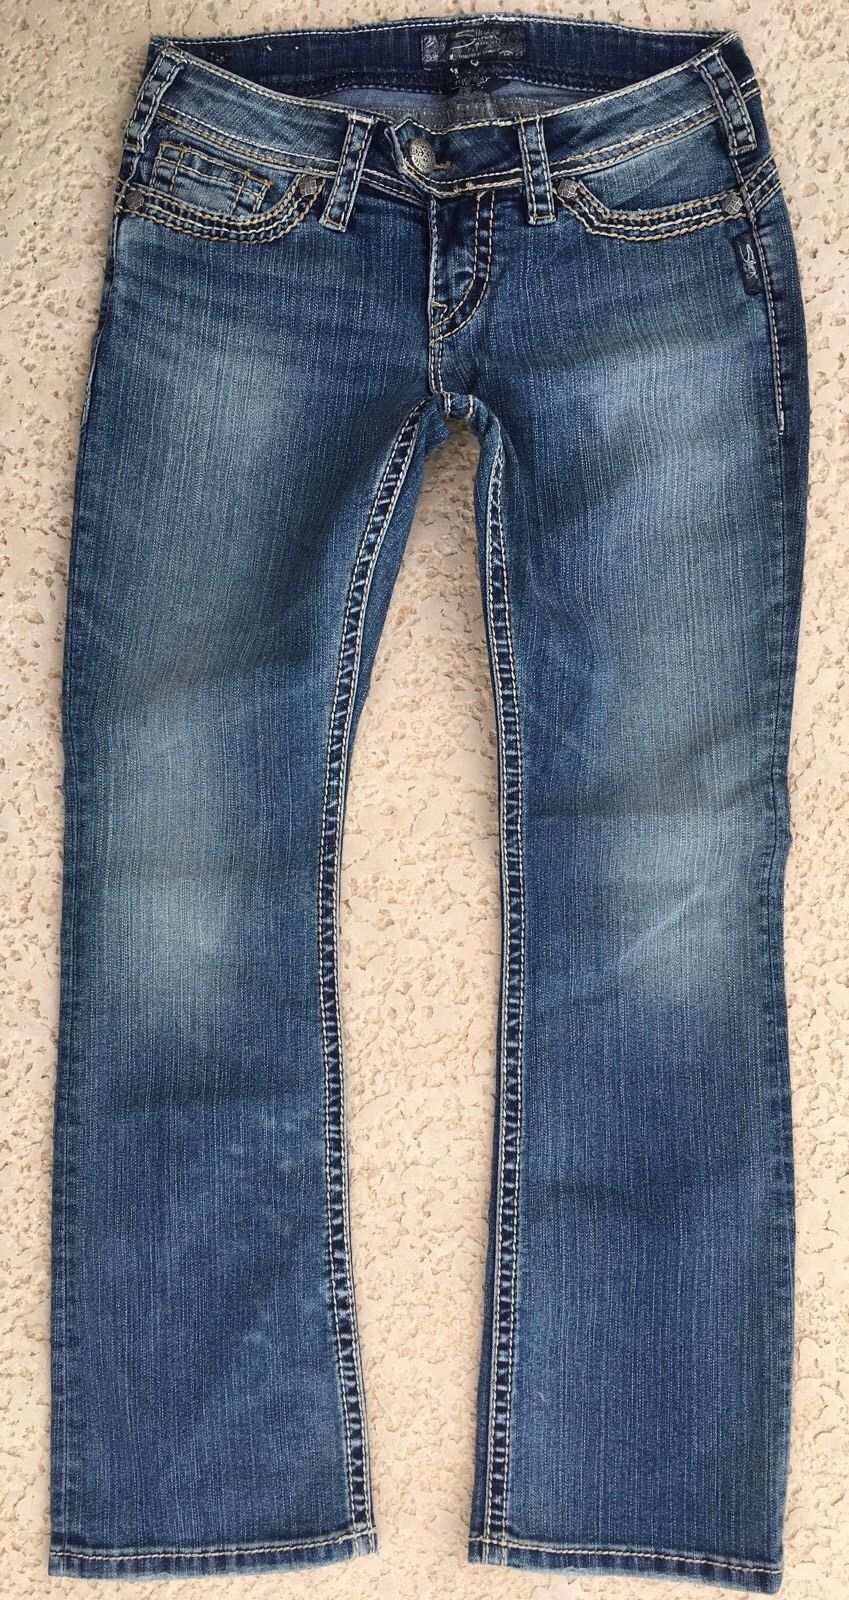 """WOMENS SILVER JEANS Tuesday Slim 16.5"""" Bootcut Stretch Jean PETITE 6PS 6P X 27"""